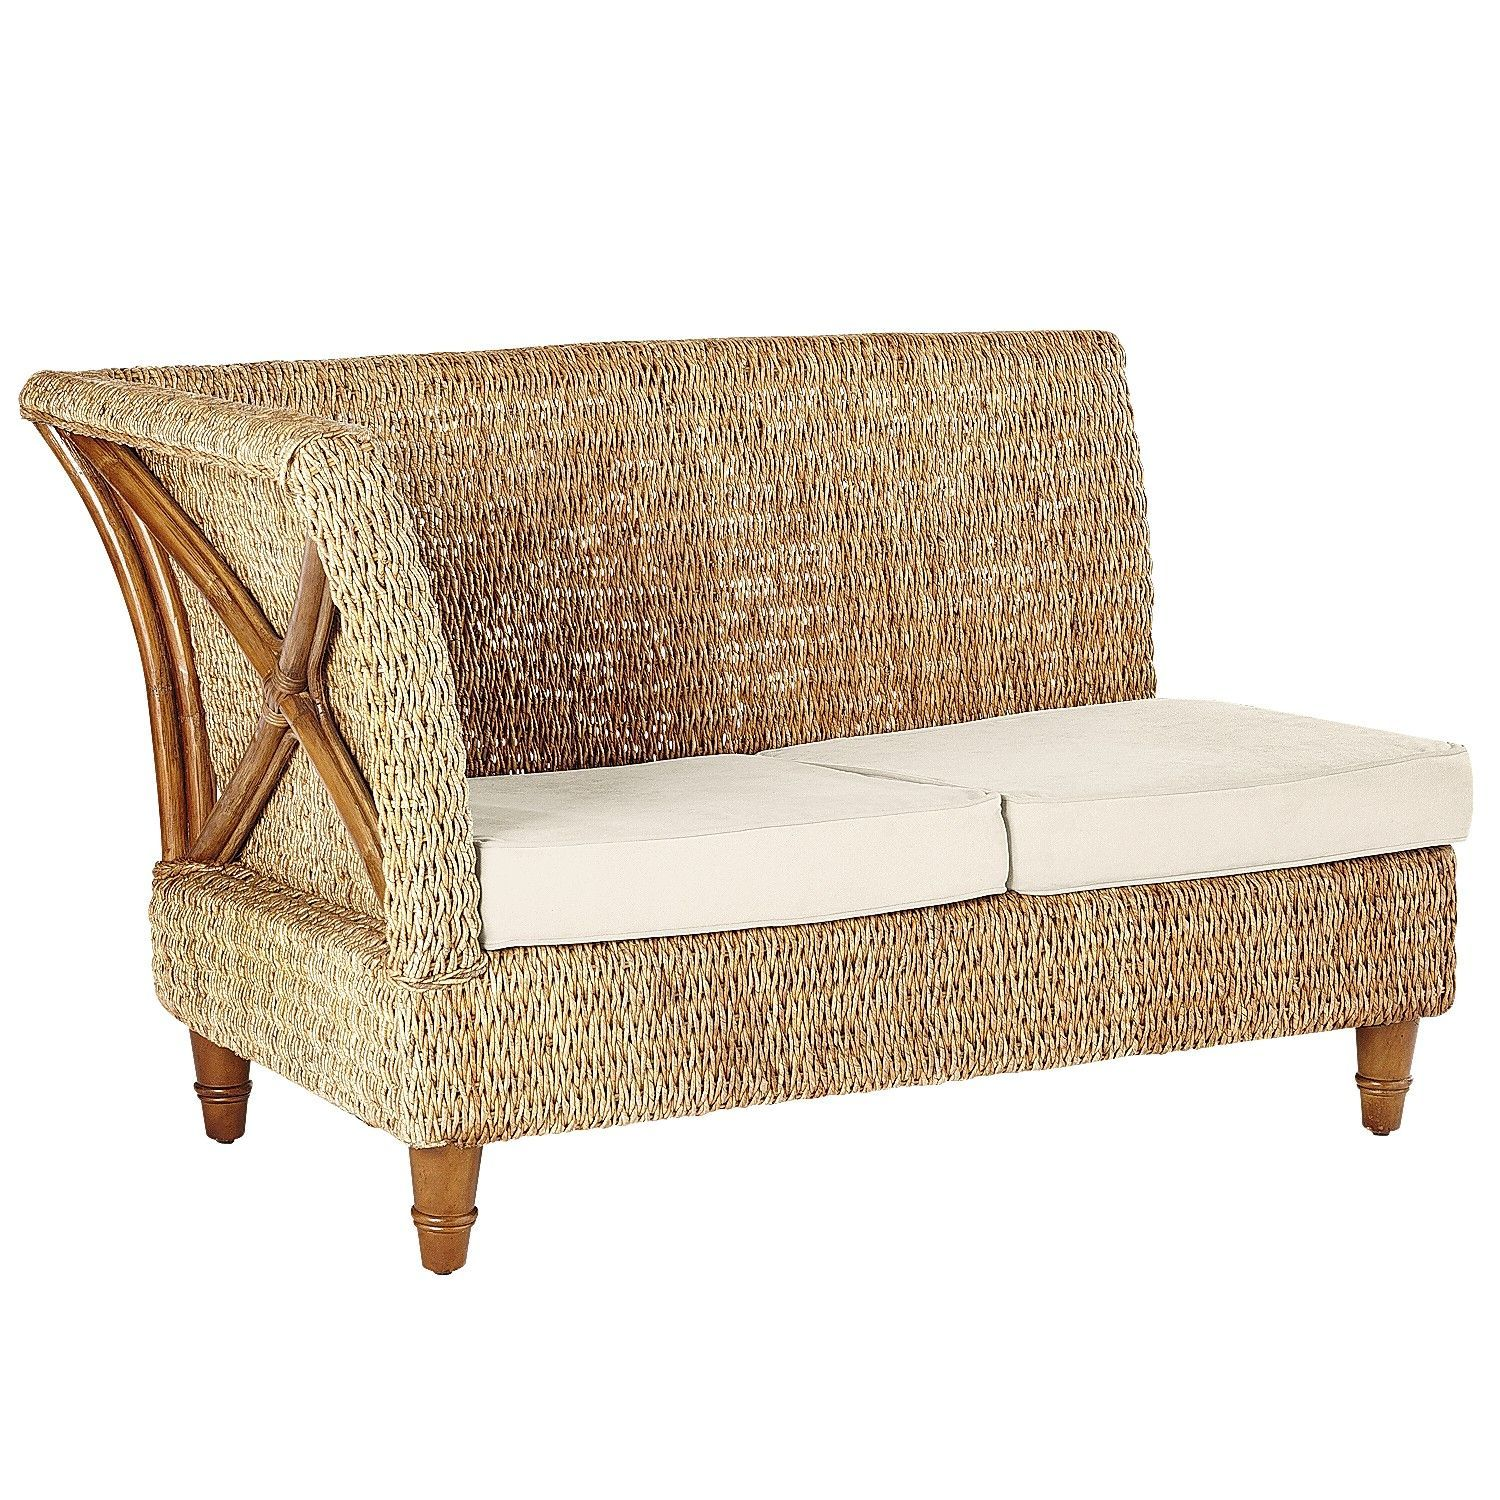 Malabon Wicker Corner Chair